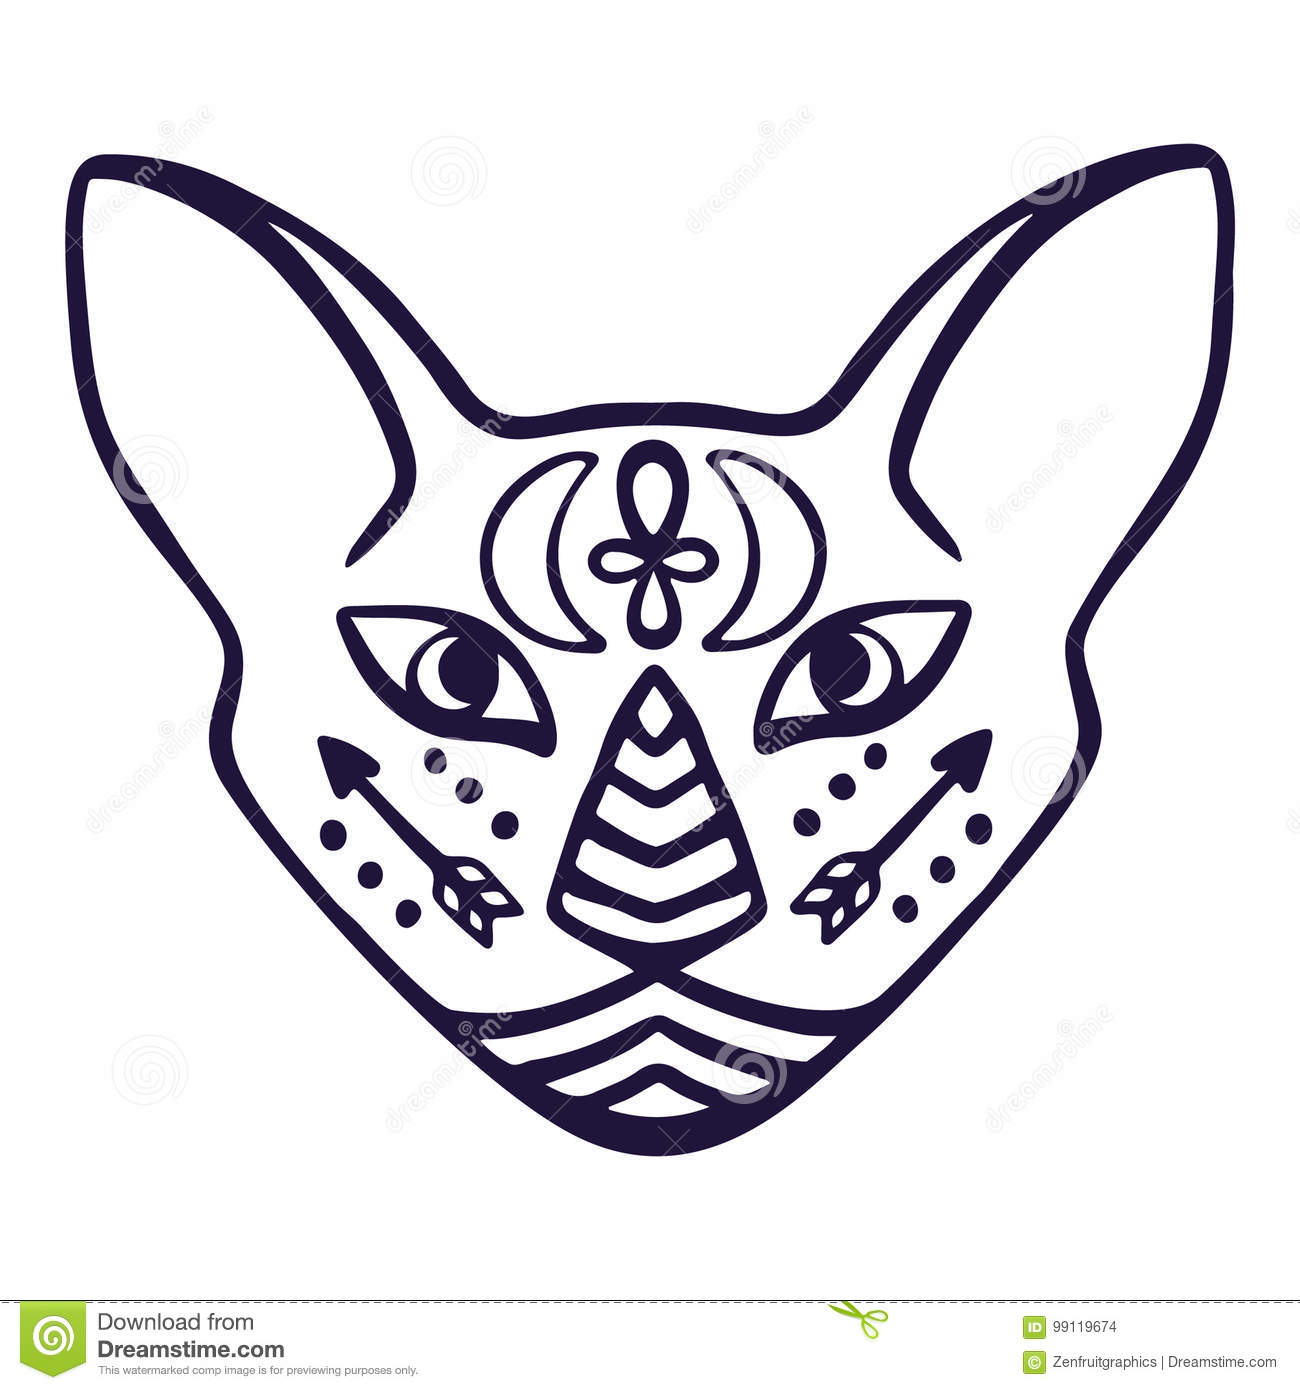 Cat face vector sacred animal of ancient egypt cat face with sacred animal of ancient egypt cat face with egyptian hieroglyphic symbols hand drawn tattoo cat isolated on wh biocorpaavc